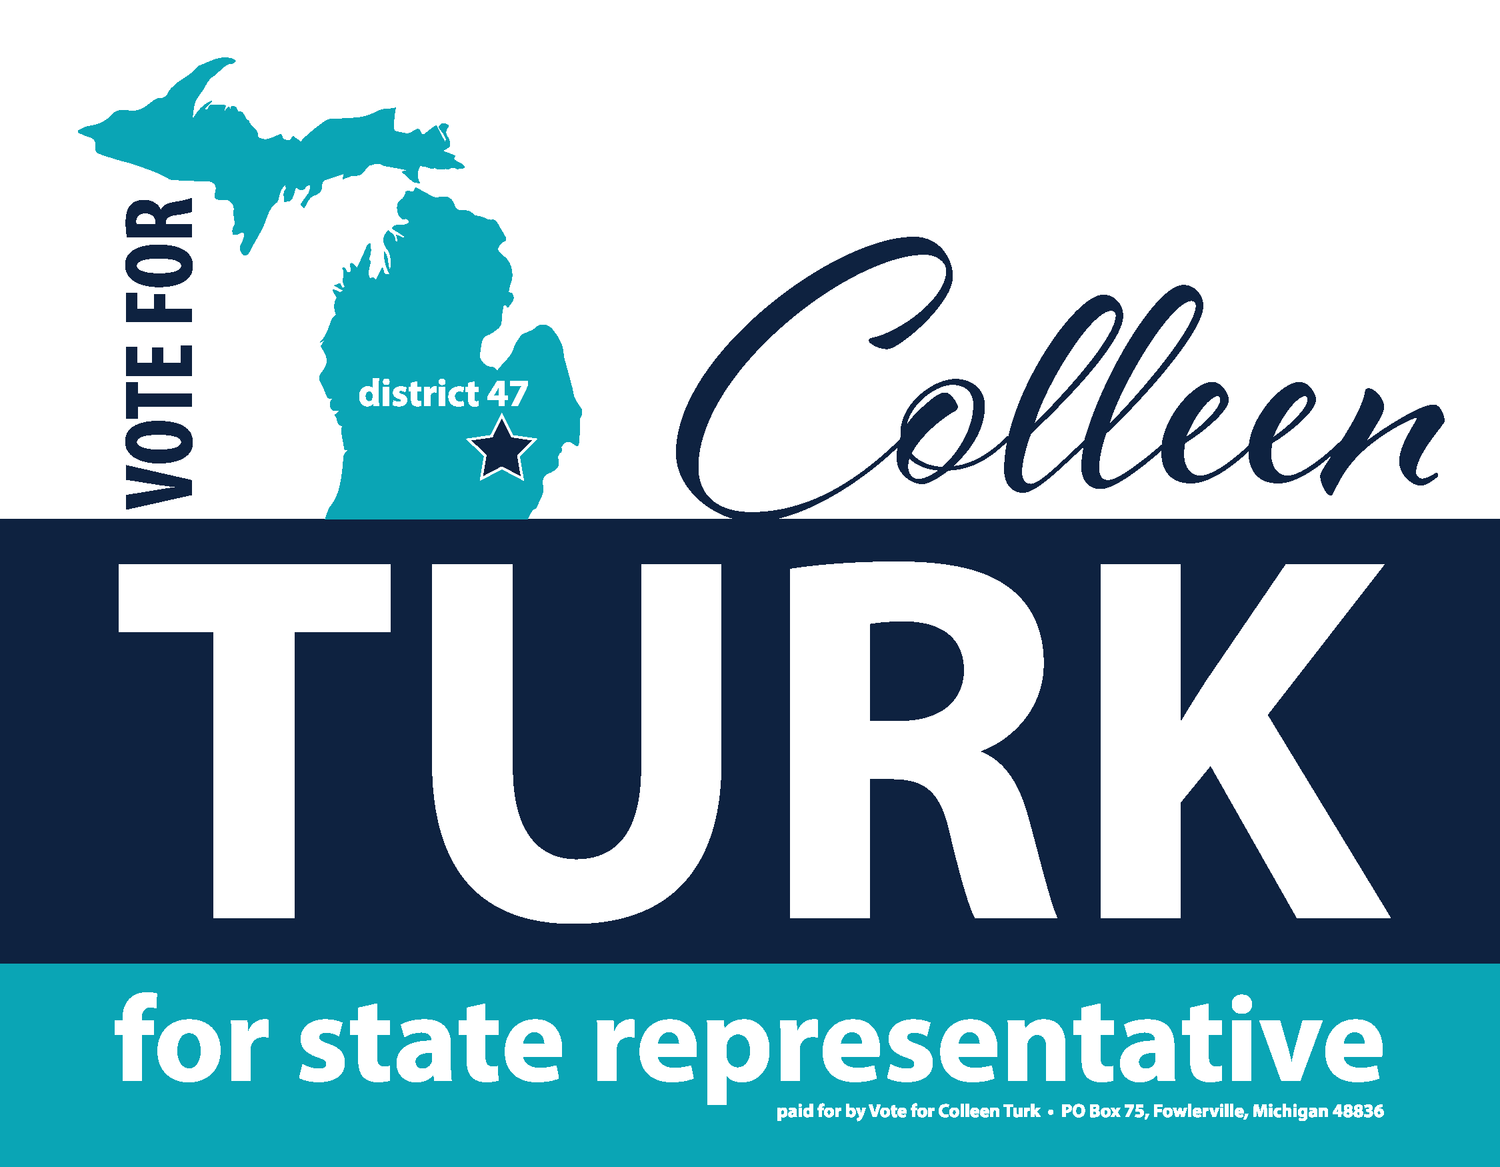 Vote for Colleen Turk